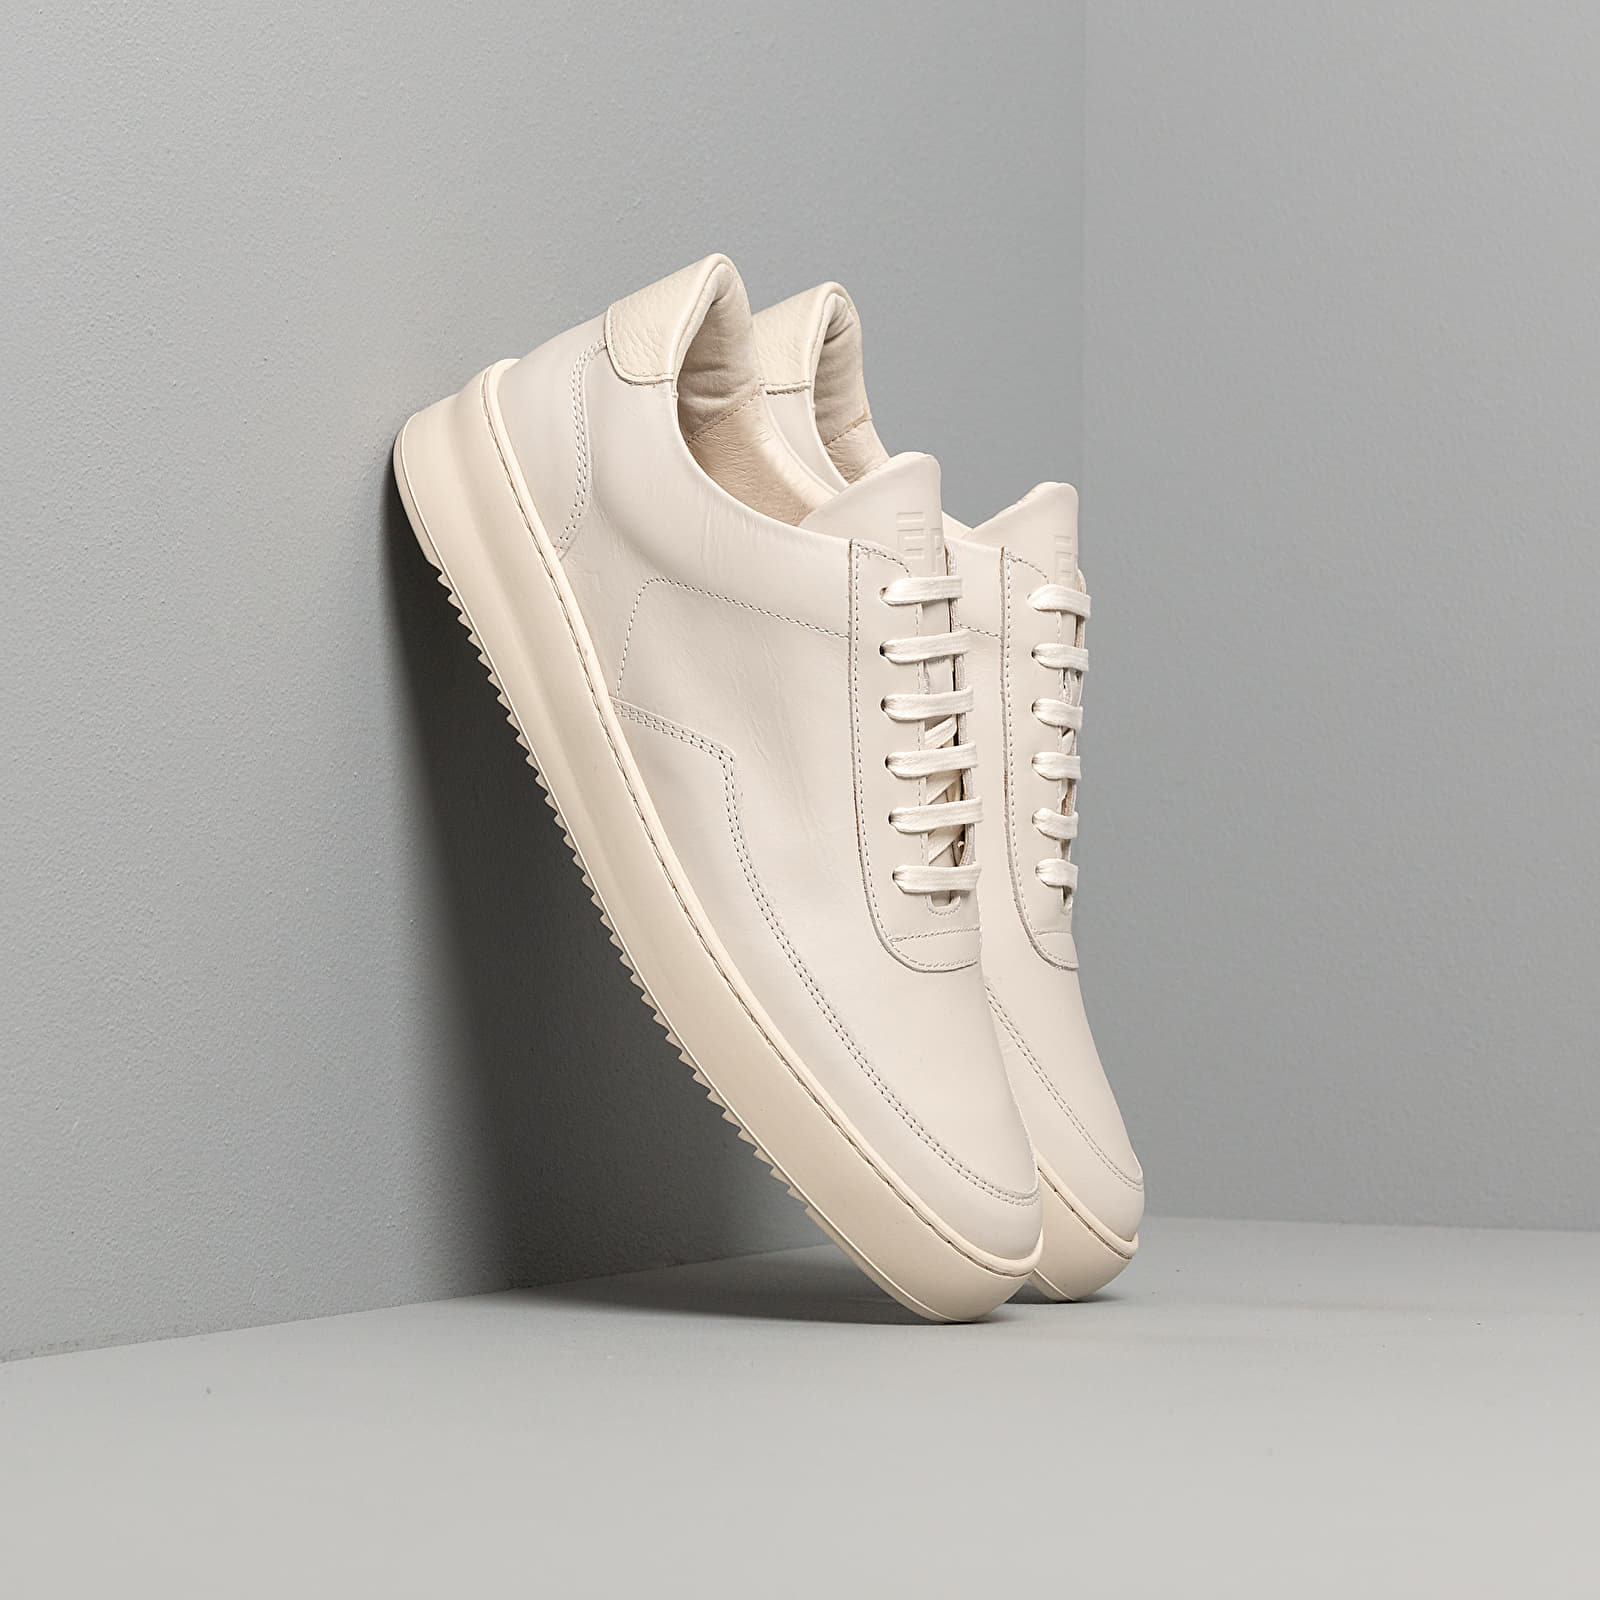 Chaussures et baskets homme Filling Pieces Low Mondo Ripple Nardo Nappa All White